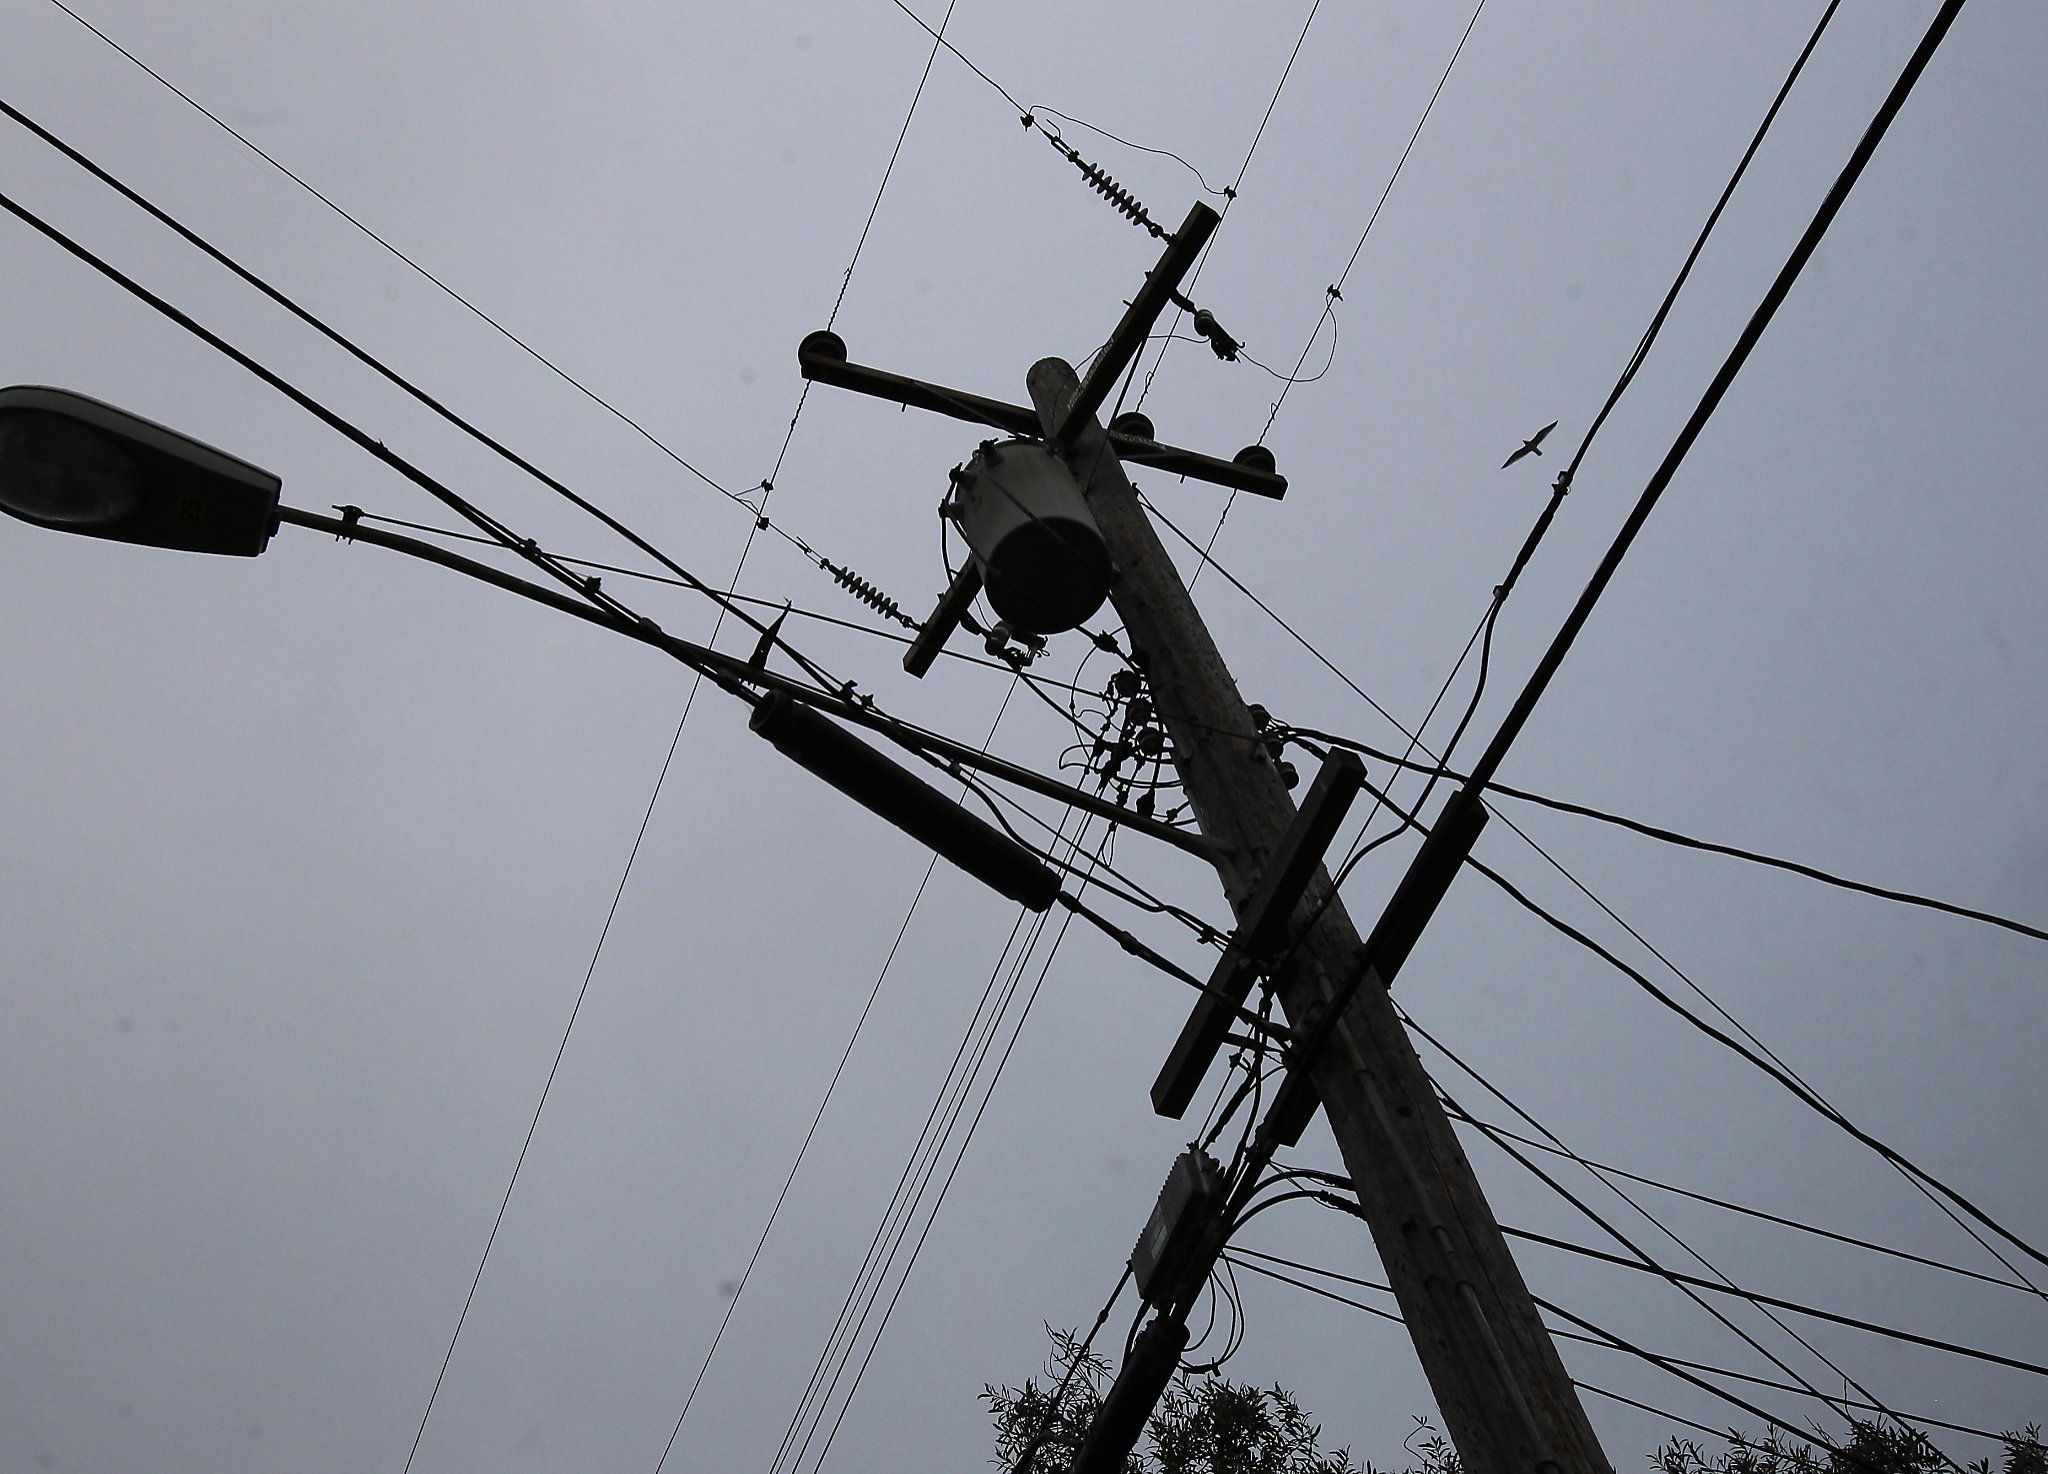 SF's Noe Valley hit by power outage - San Antonio Express-News